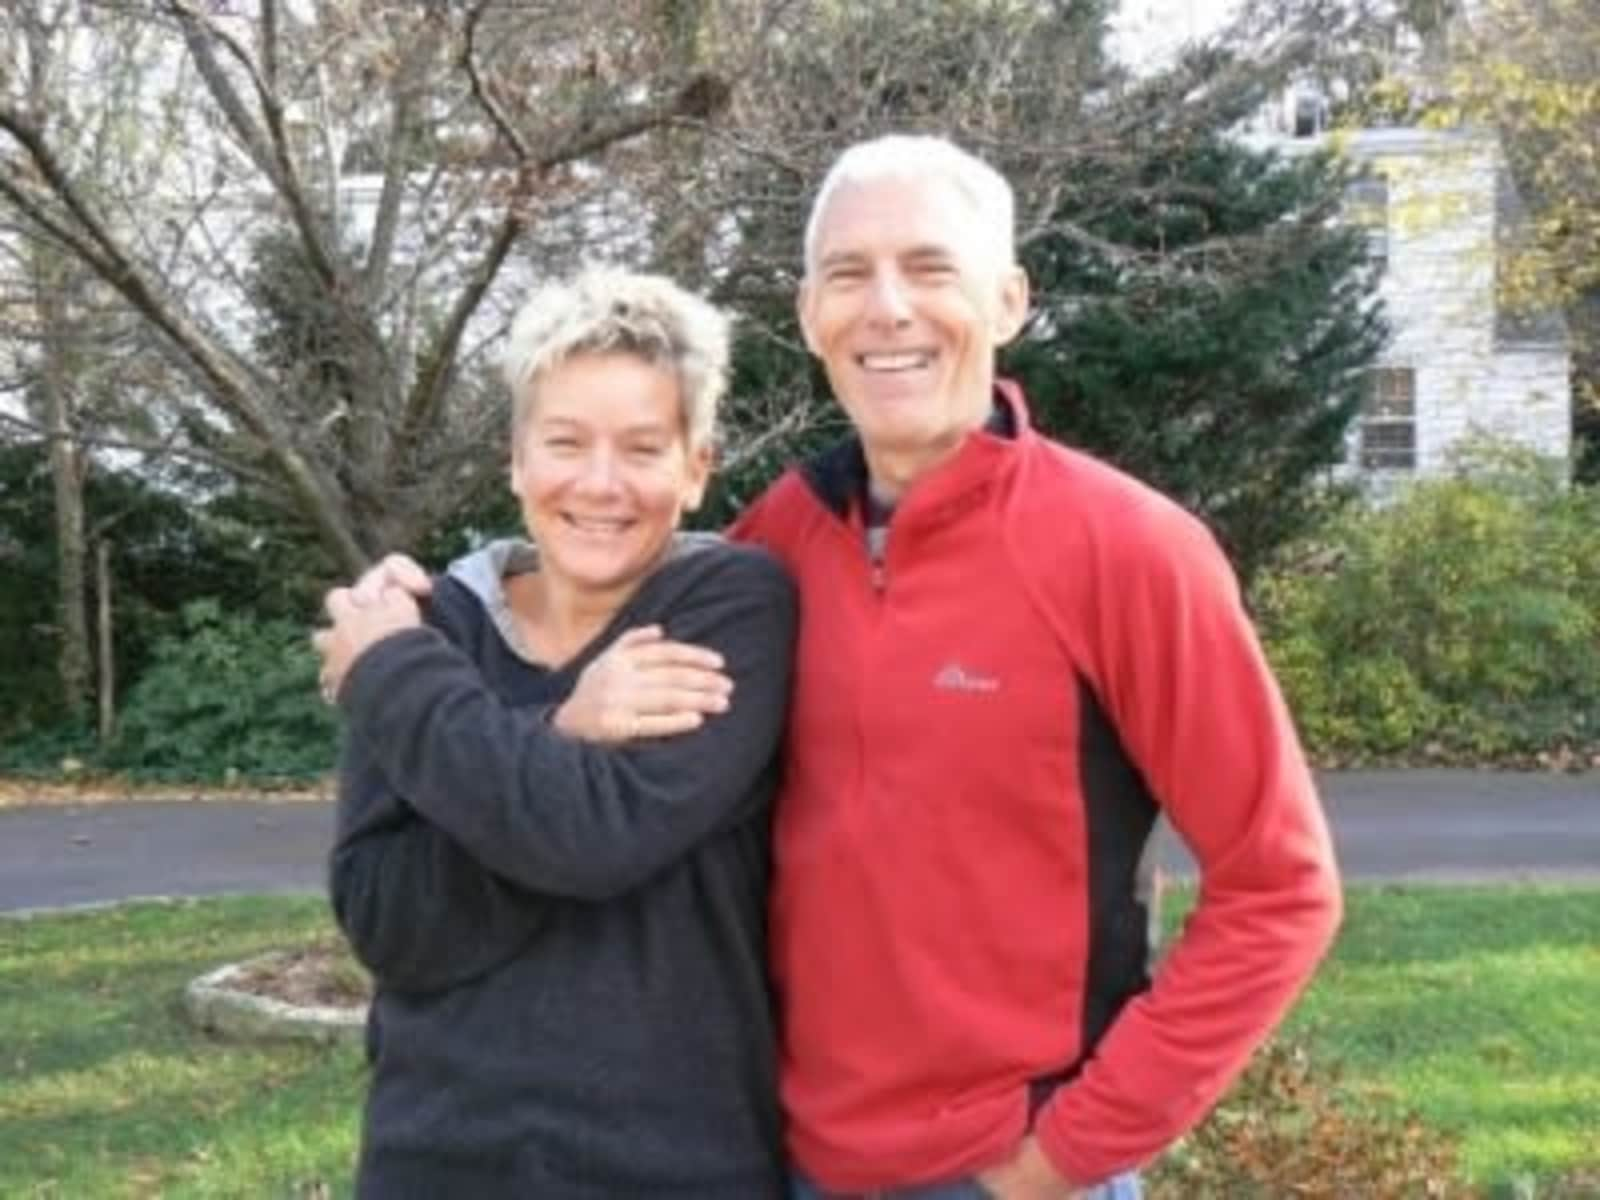 Kristine & Geoff from Sydney, New South Wales, Australia